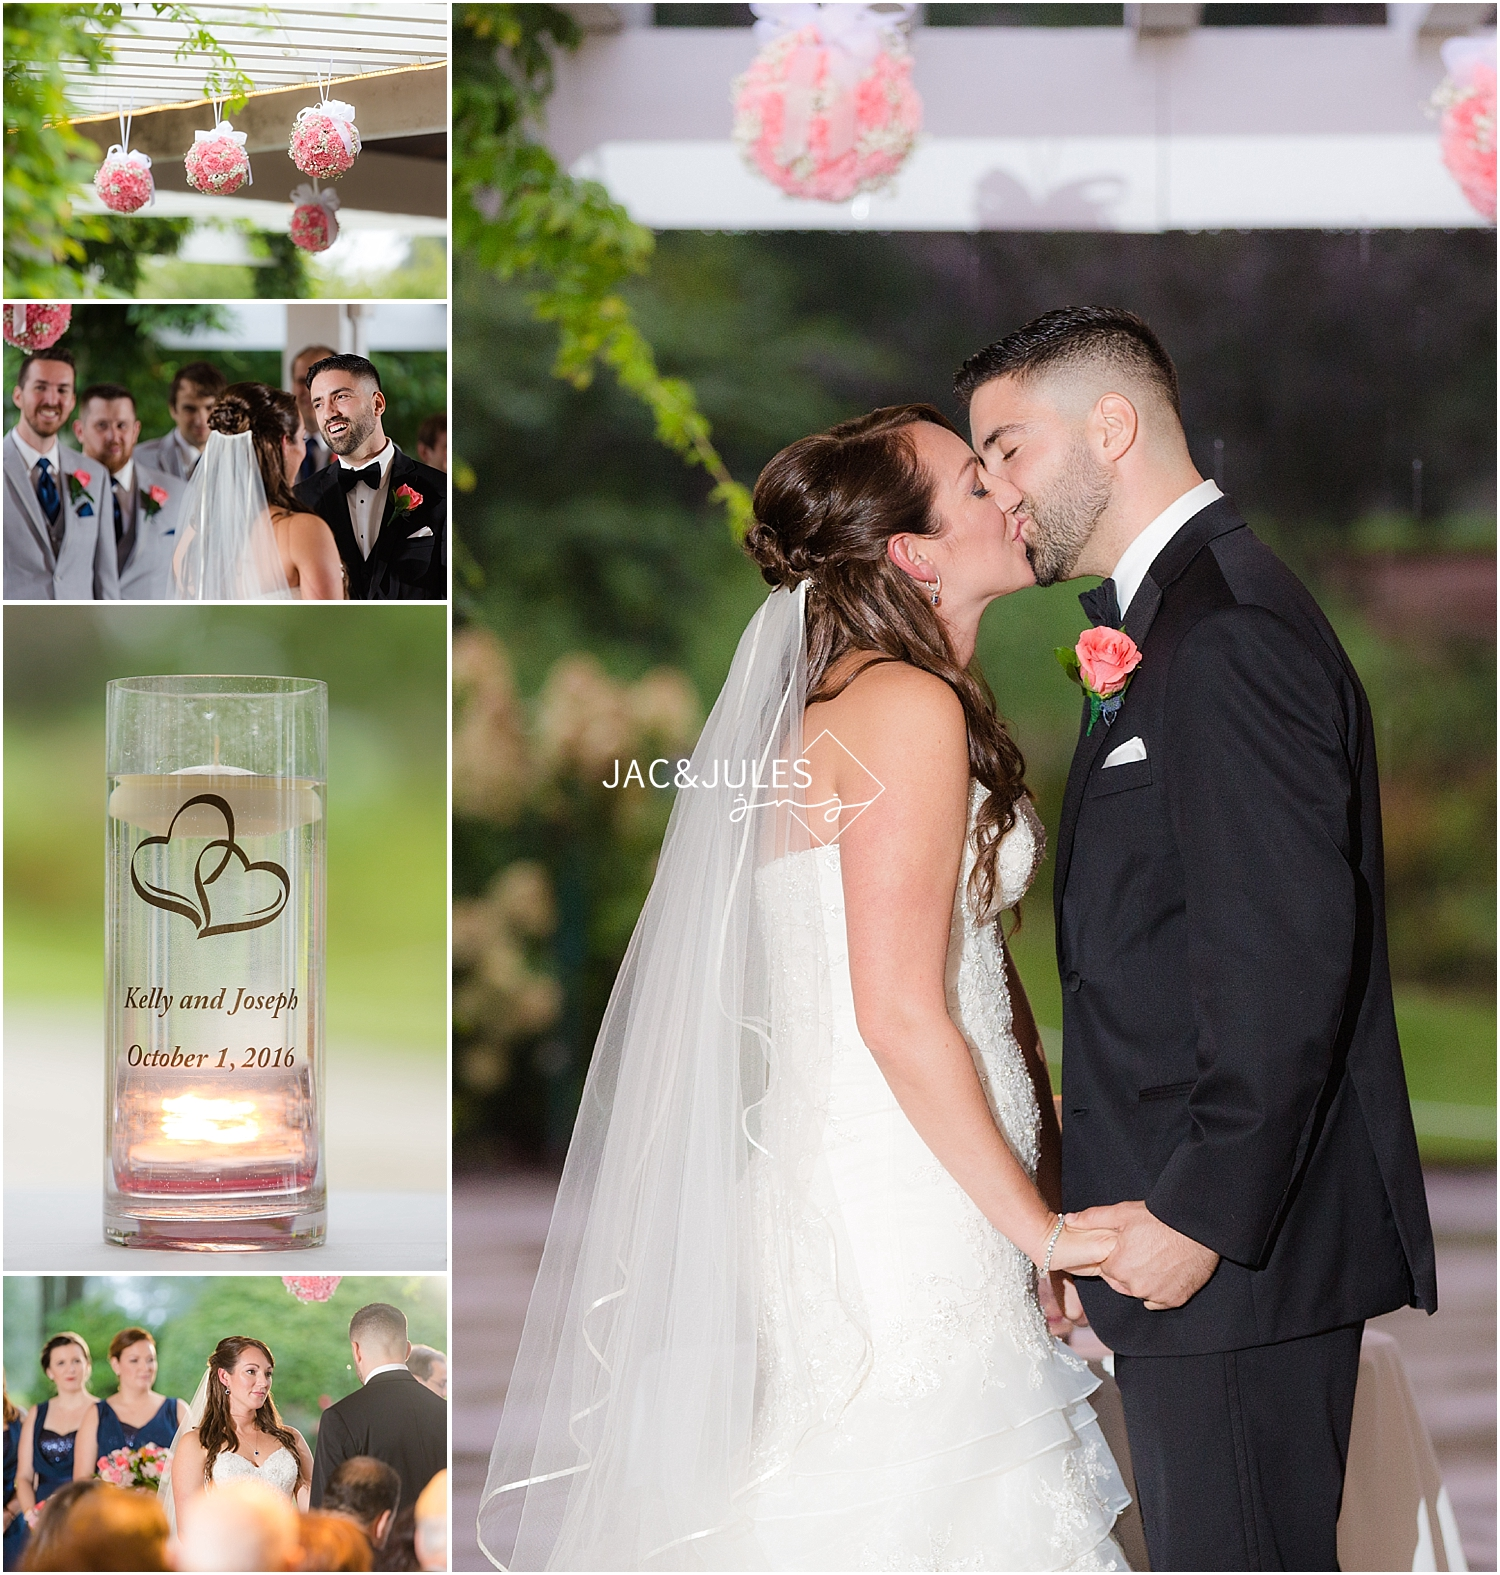 jacnjules photograph a romantic wedding ceremony on Stockton at Seaview in Galloway, NJ